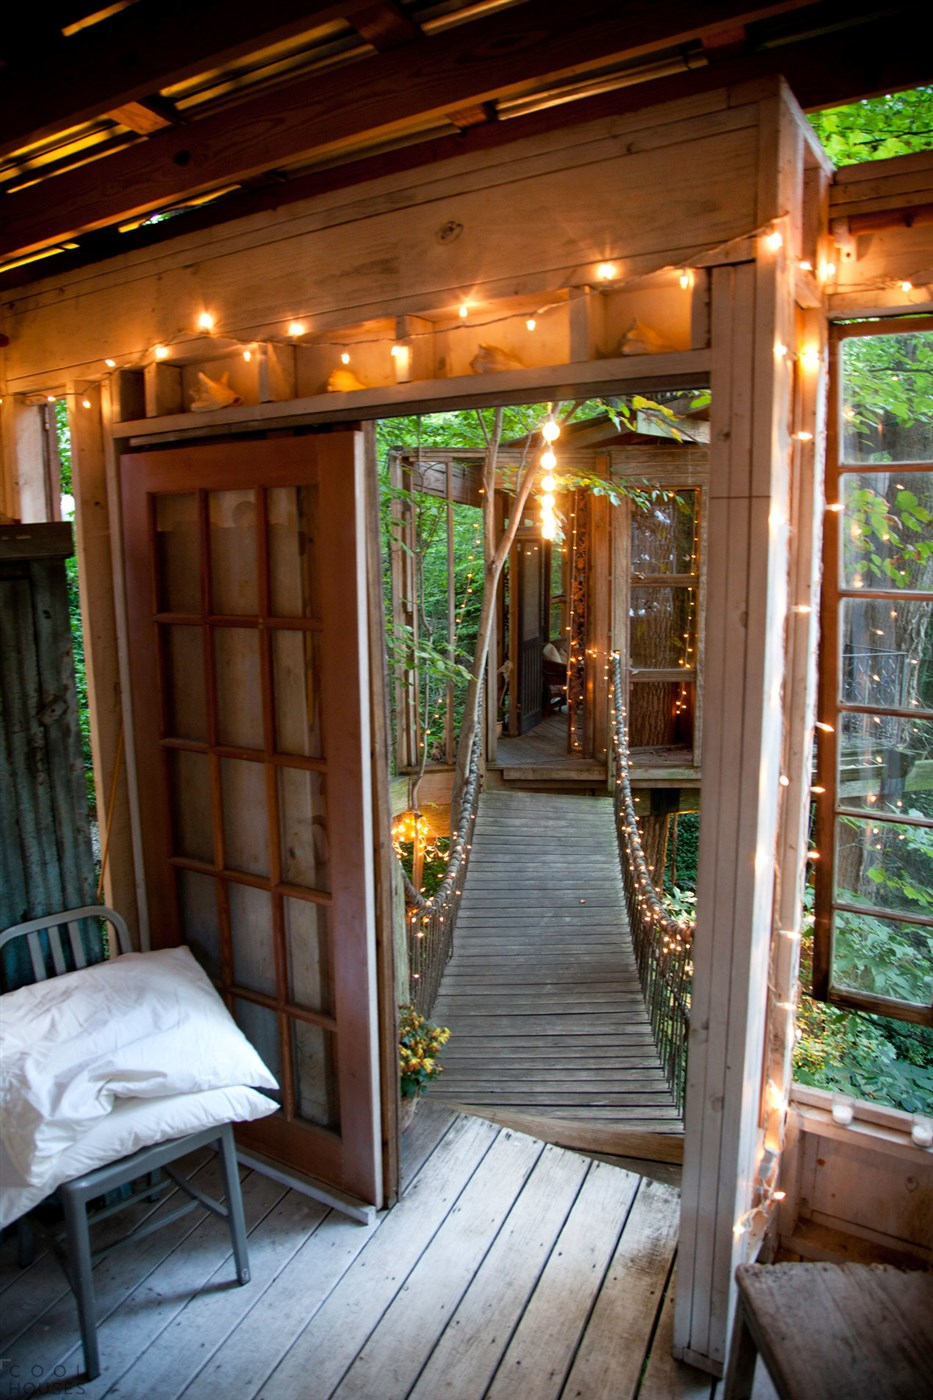 wood tree house entrance and wooden bridge